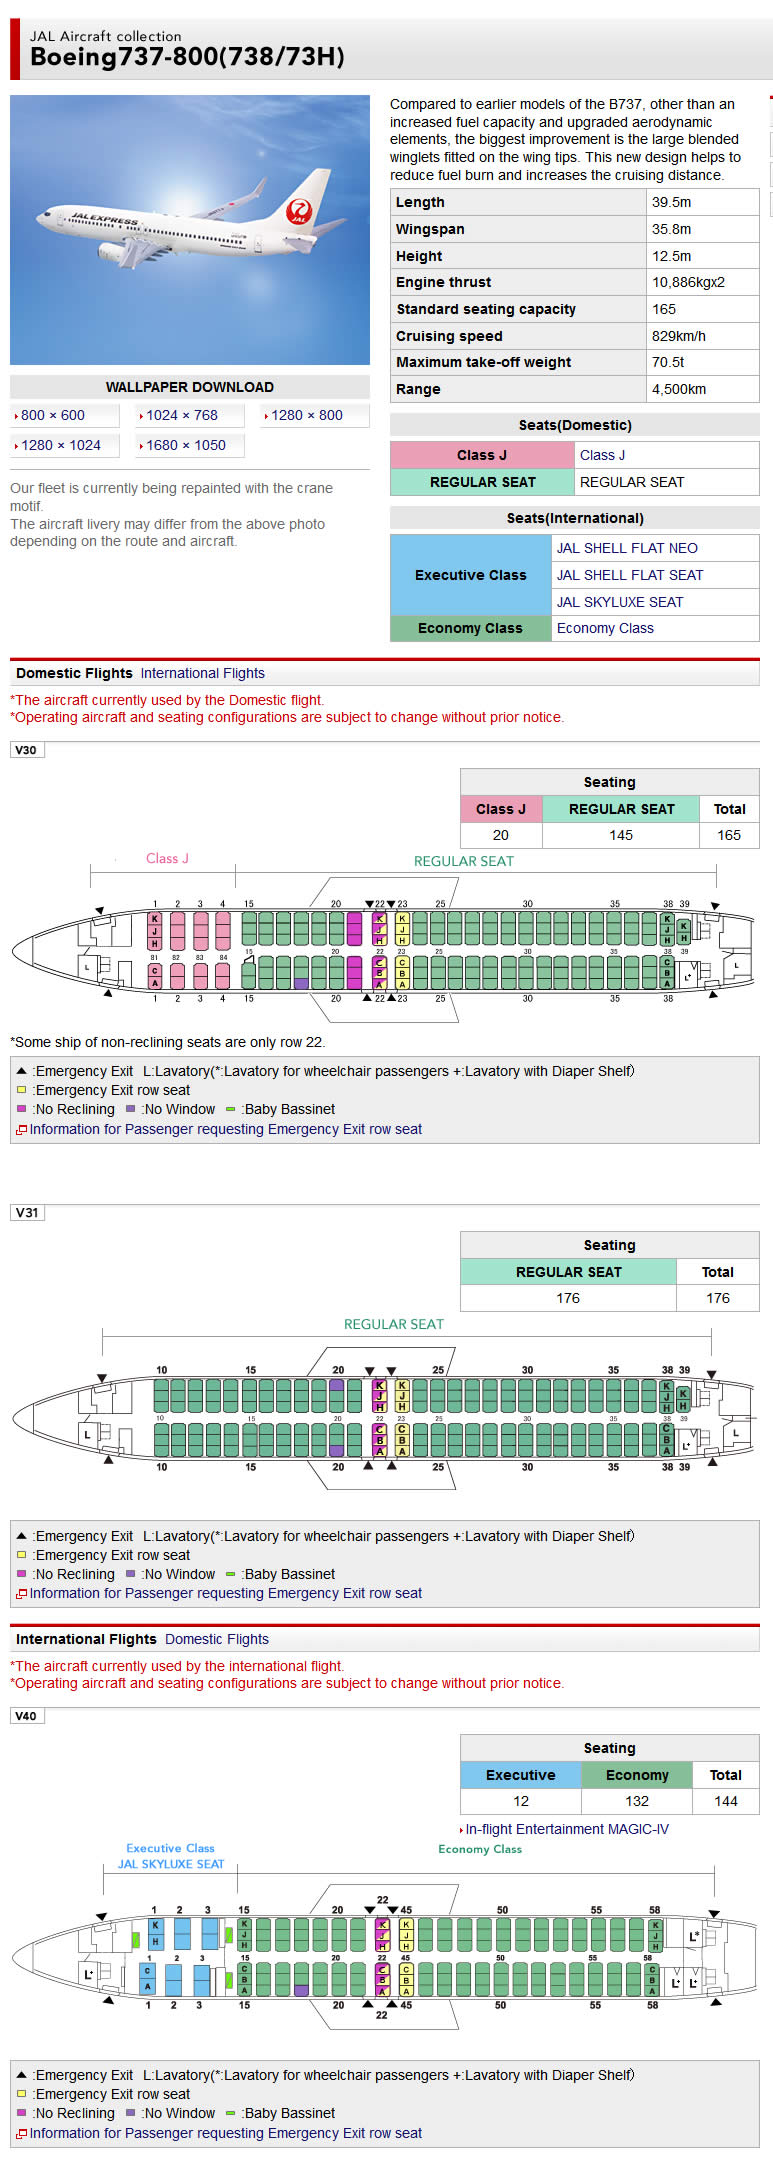 JAL JAPAN AIR AIRLINES BOEING 737-800 AIRCRAFT SEATING CHART